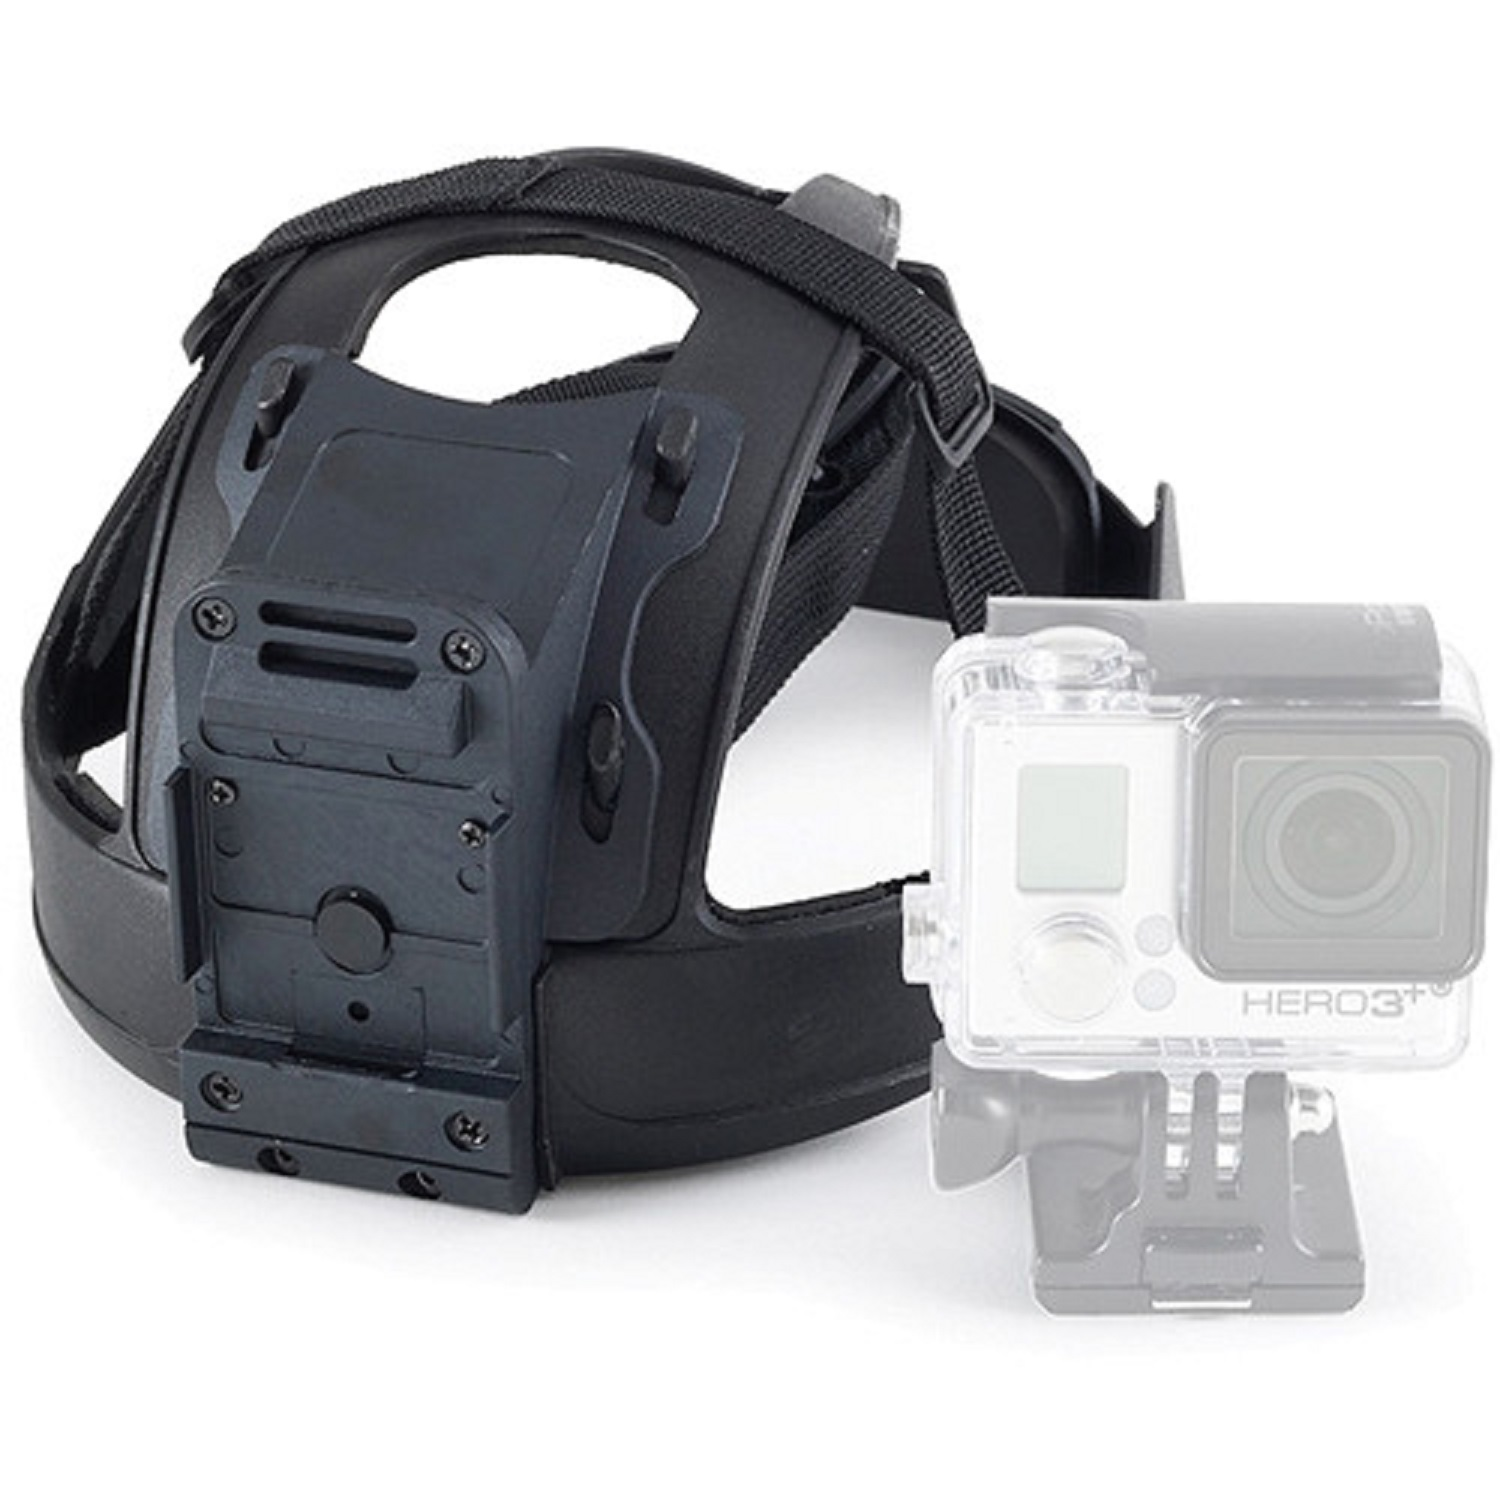 Bering Optics Hard Hat Design Headgear for GoPro Camera